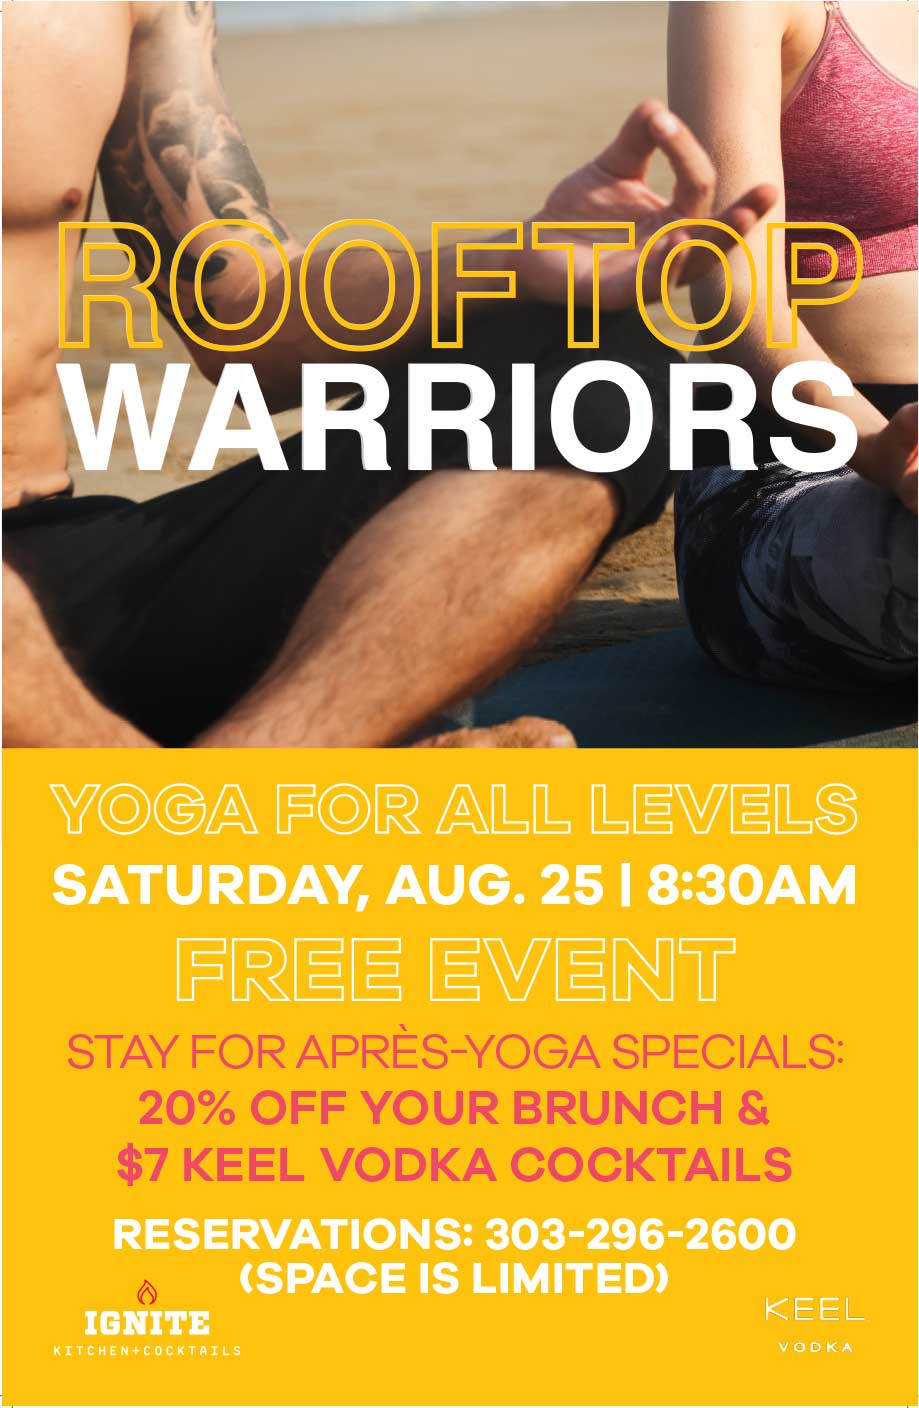 Join us for Yoga on the rooftop! - Calling all yogis! This class is perfect for all levels and takes place on our rooftop with the beautiful Denver skyline in the background. FREE to attend. Stay for aprs-yoga brunch specials!Reserver your spot: 303-296-2600